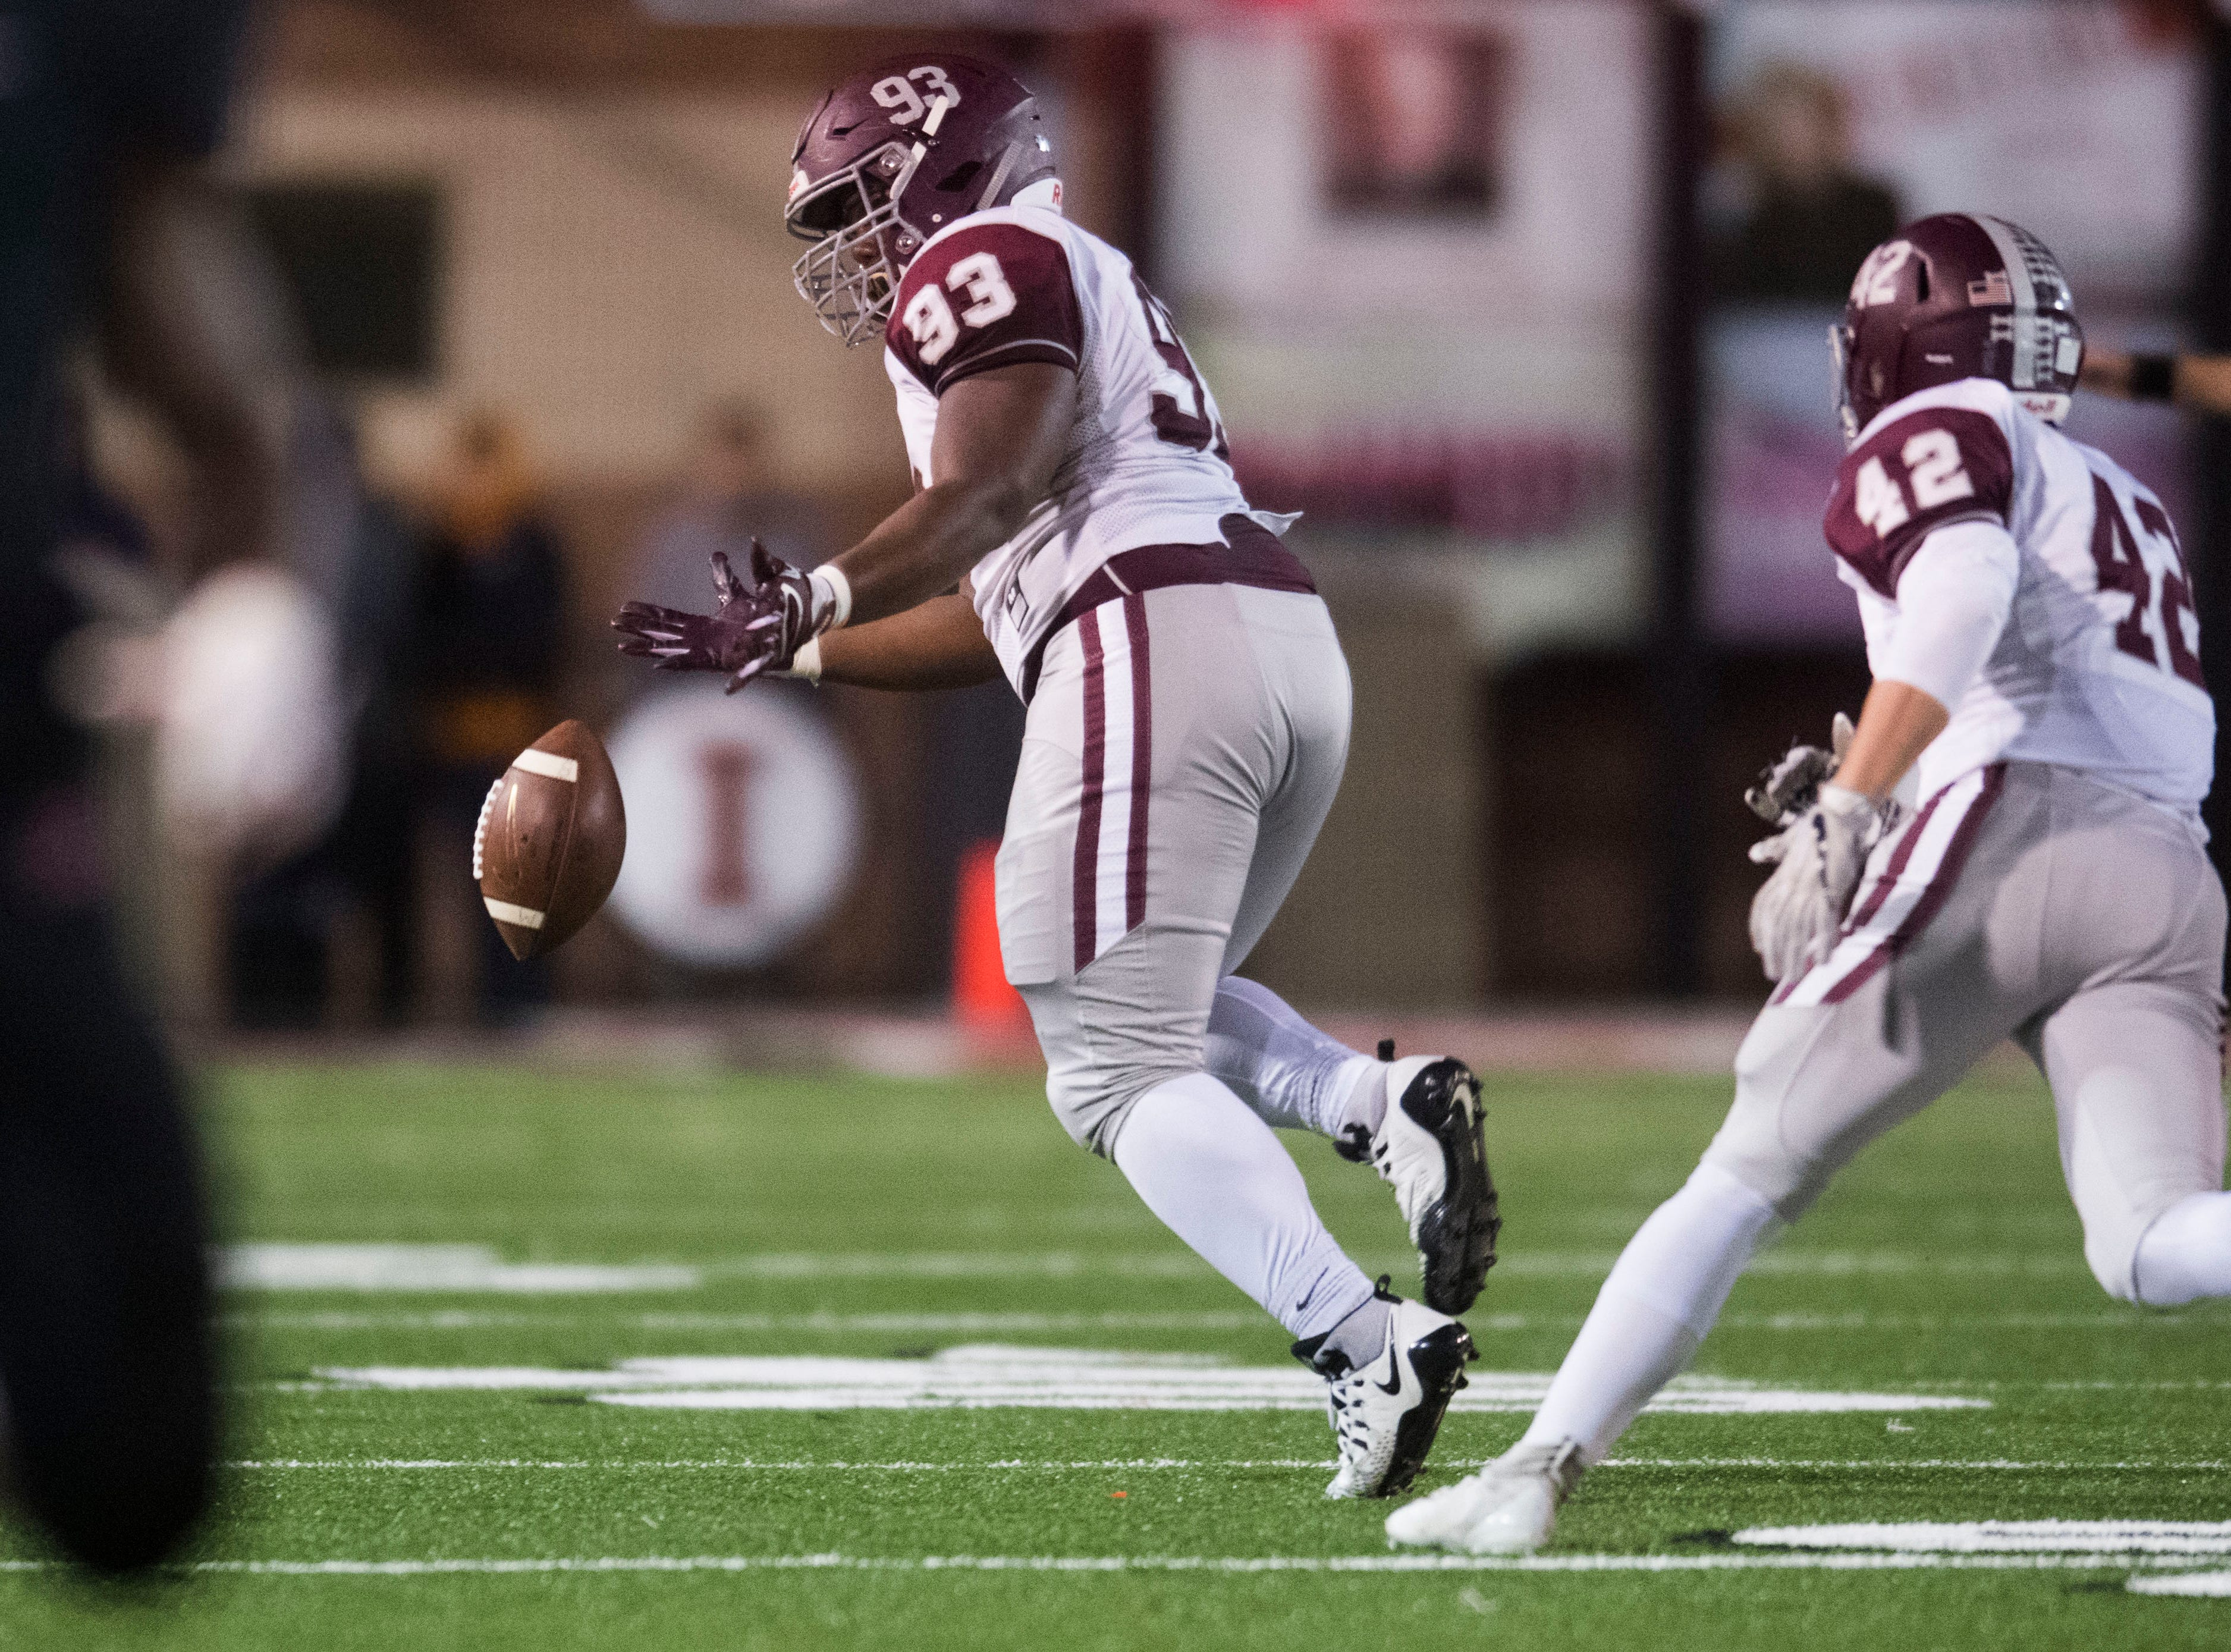 Bearden's AJ Simon (93) attempts to control a fumbled ball during a first round playoff game between Maryville and Bearden at Maryville, Friday, Nov. 2, 2018. Maryville defeated Bearden 28-7.